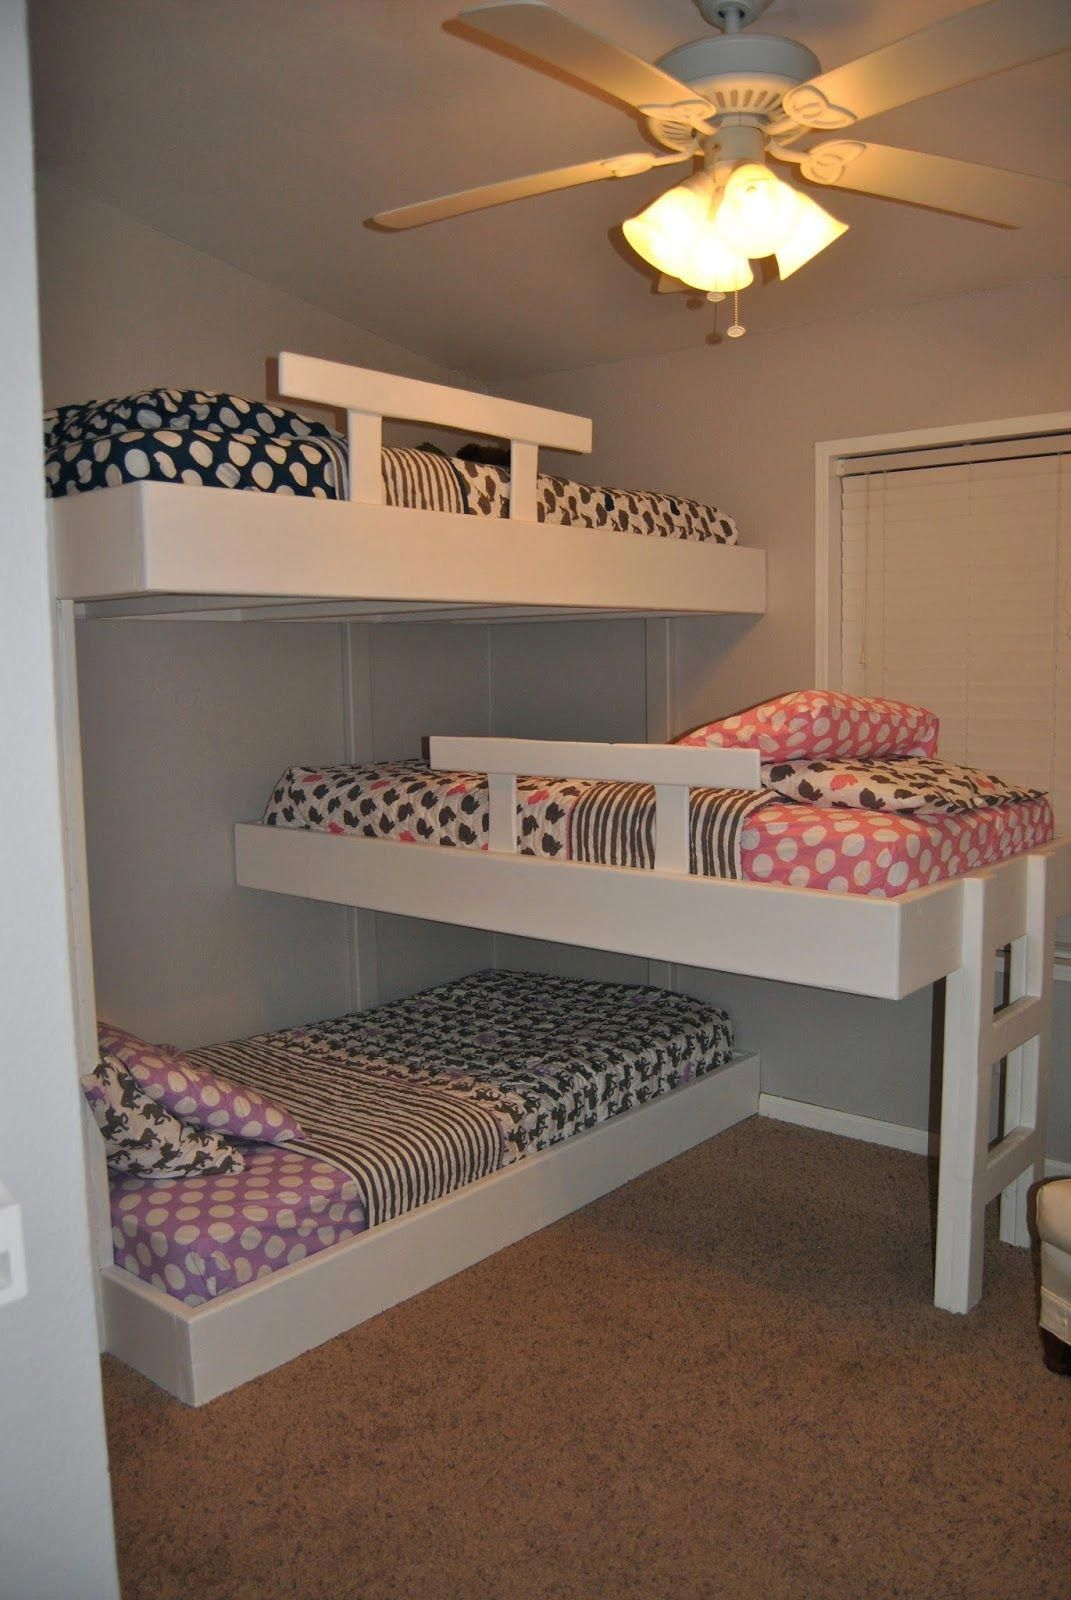 Childrens loft bedroom ideas  Triple Bunk Bed on Life with Mack u Macy  We love our new bunks and